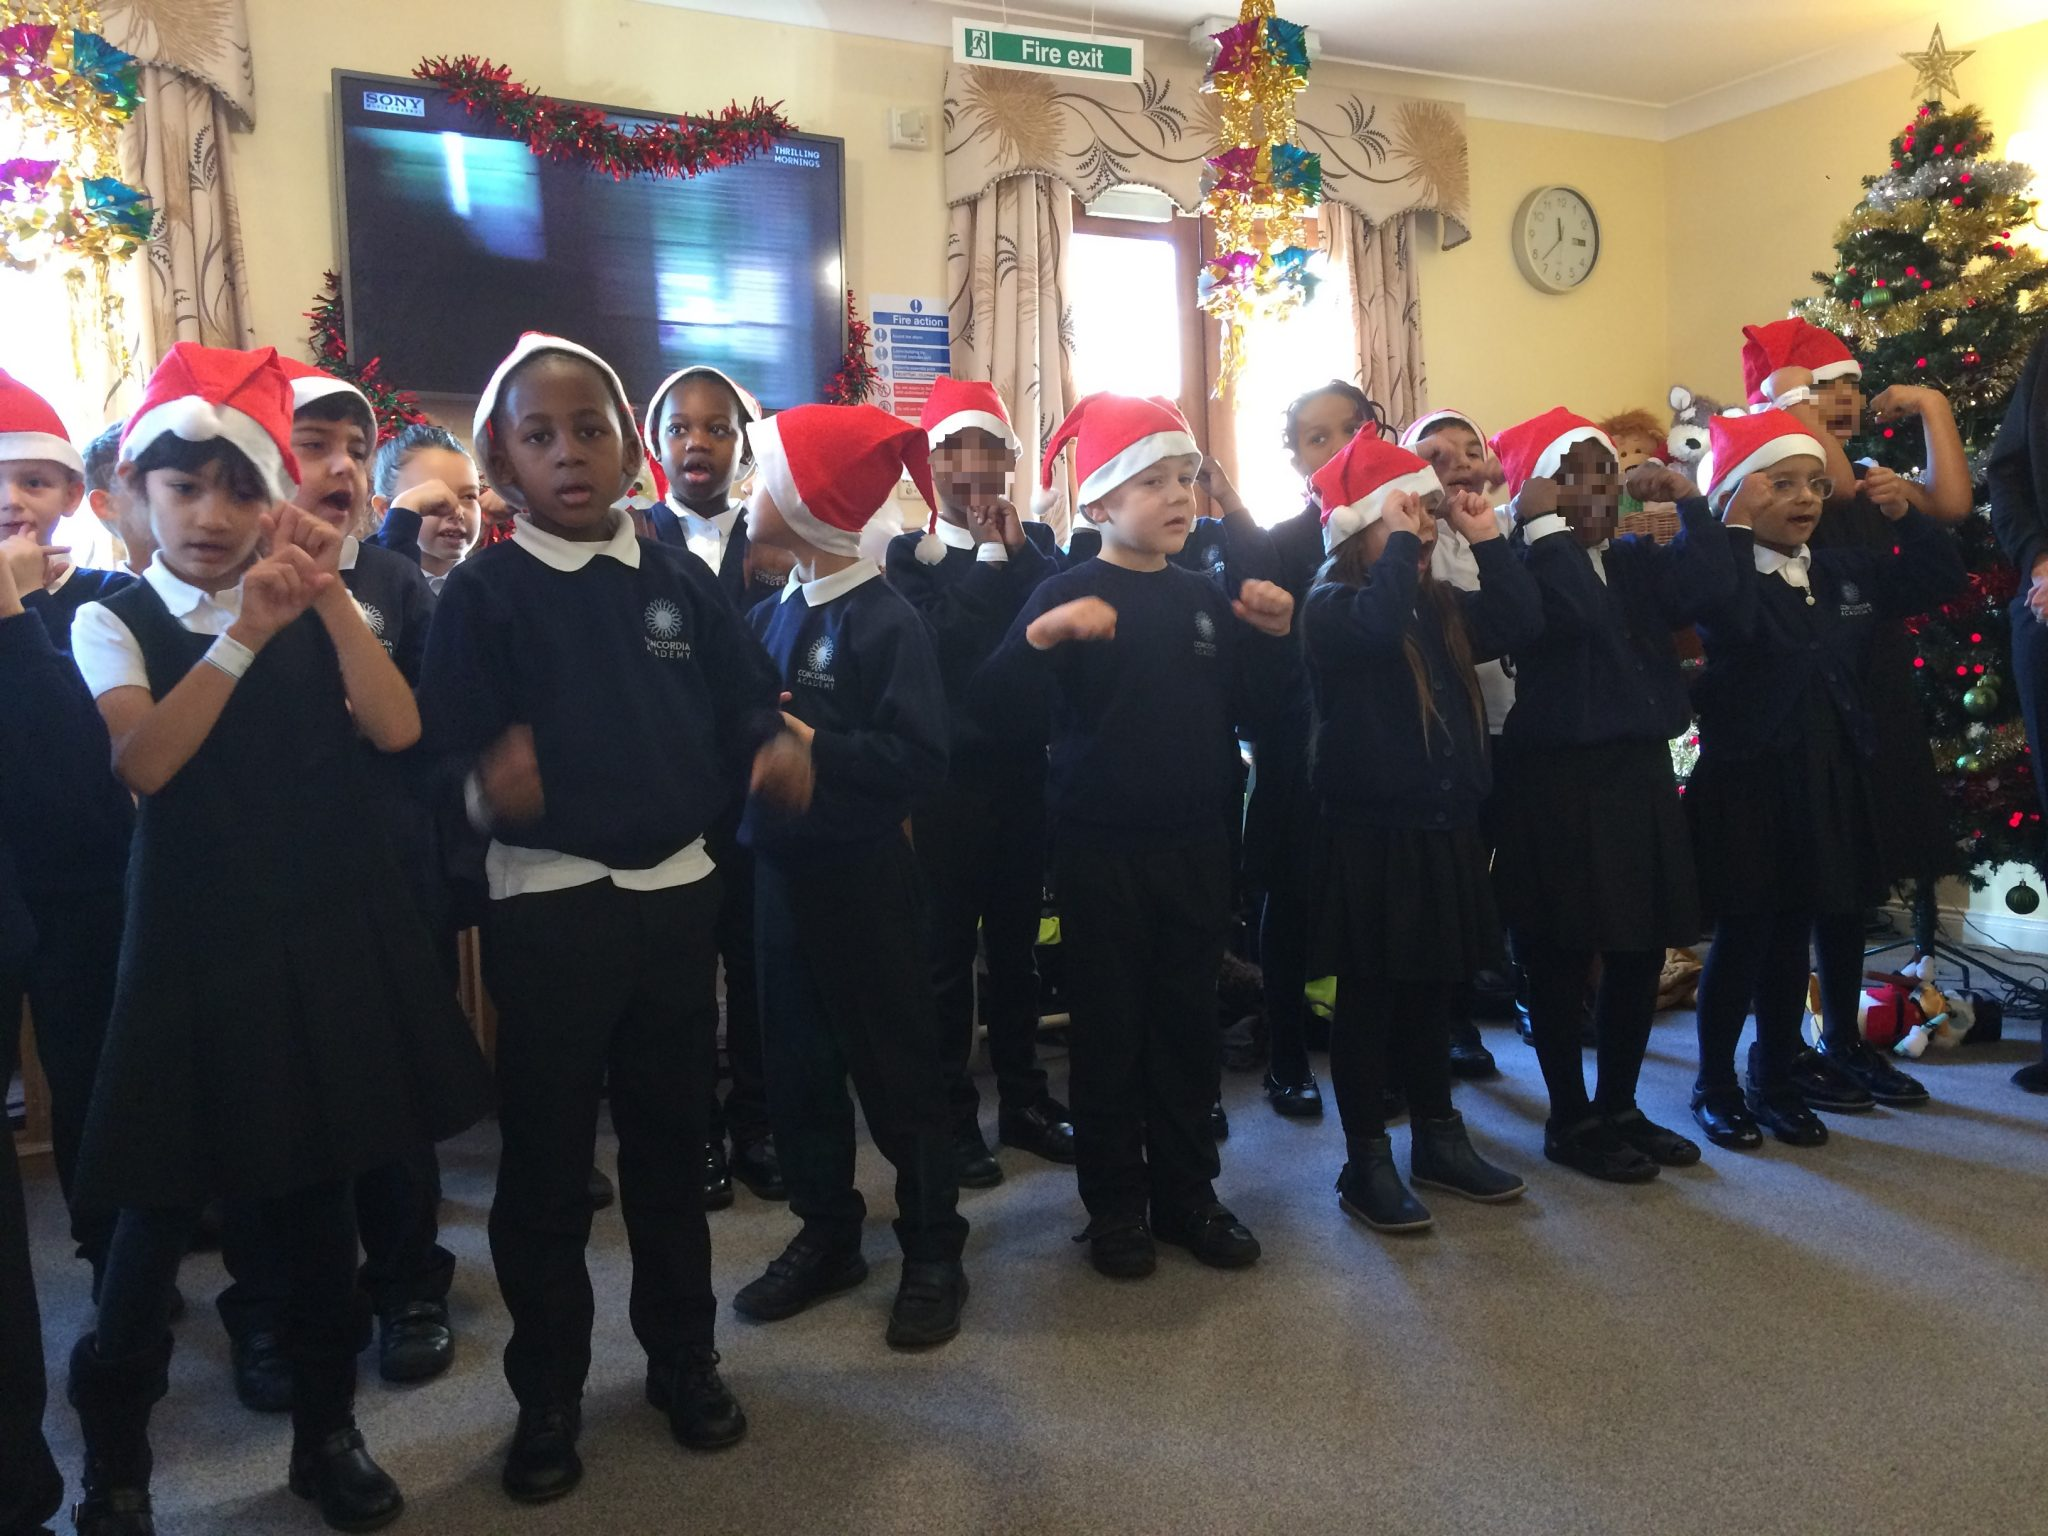 Carols at Heatherbrook Care Home